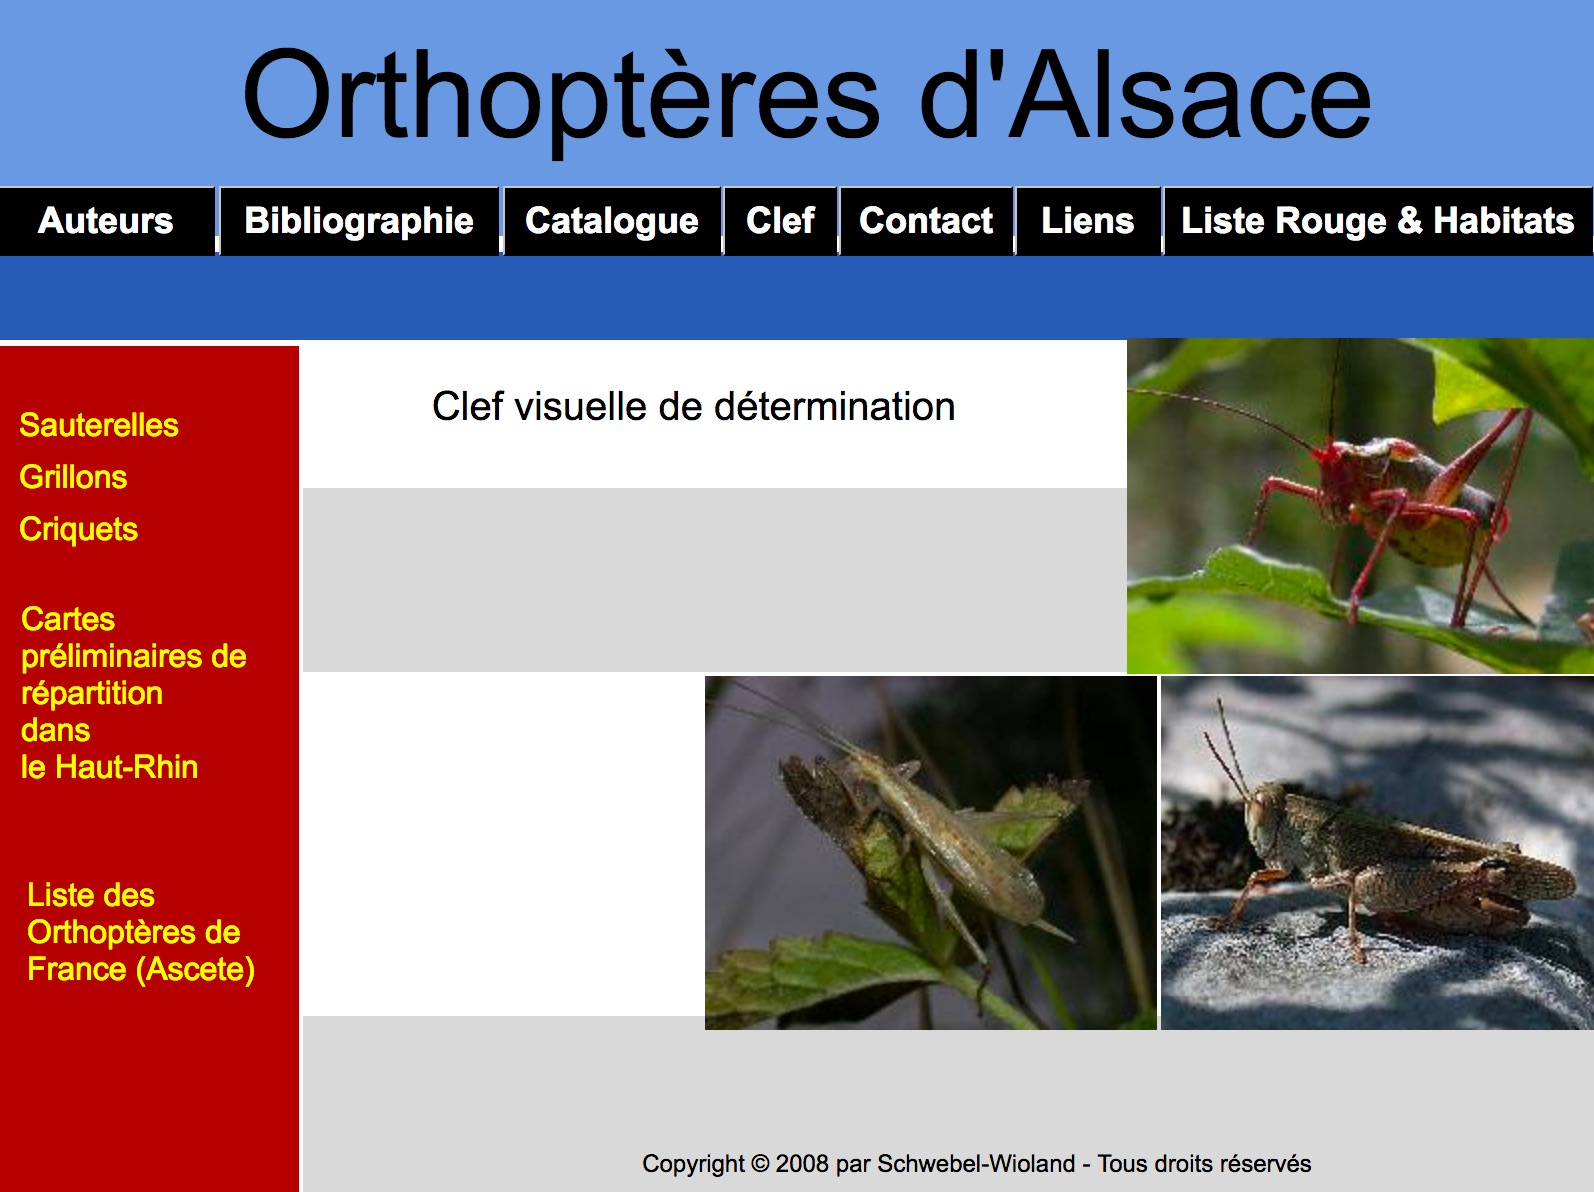 https://cdnfiles2.biolovision.net/www.faune-alsace.org/userfiles/Insectes/ORTHOPTERA/sitewebLS.jpg